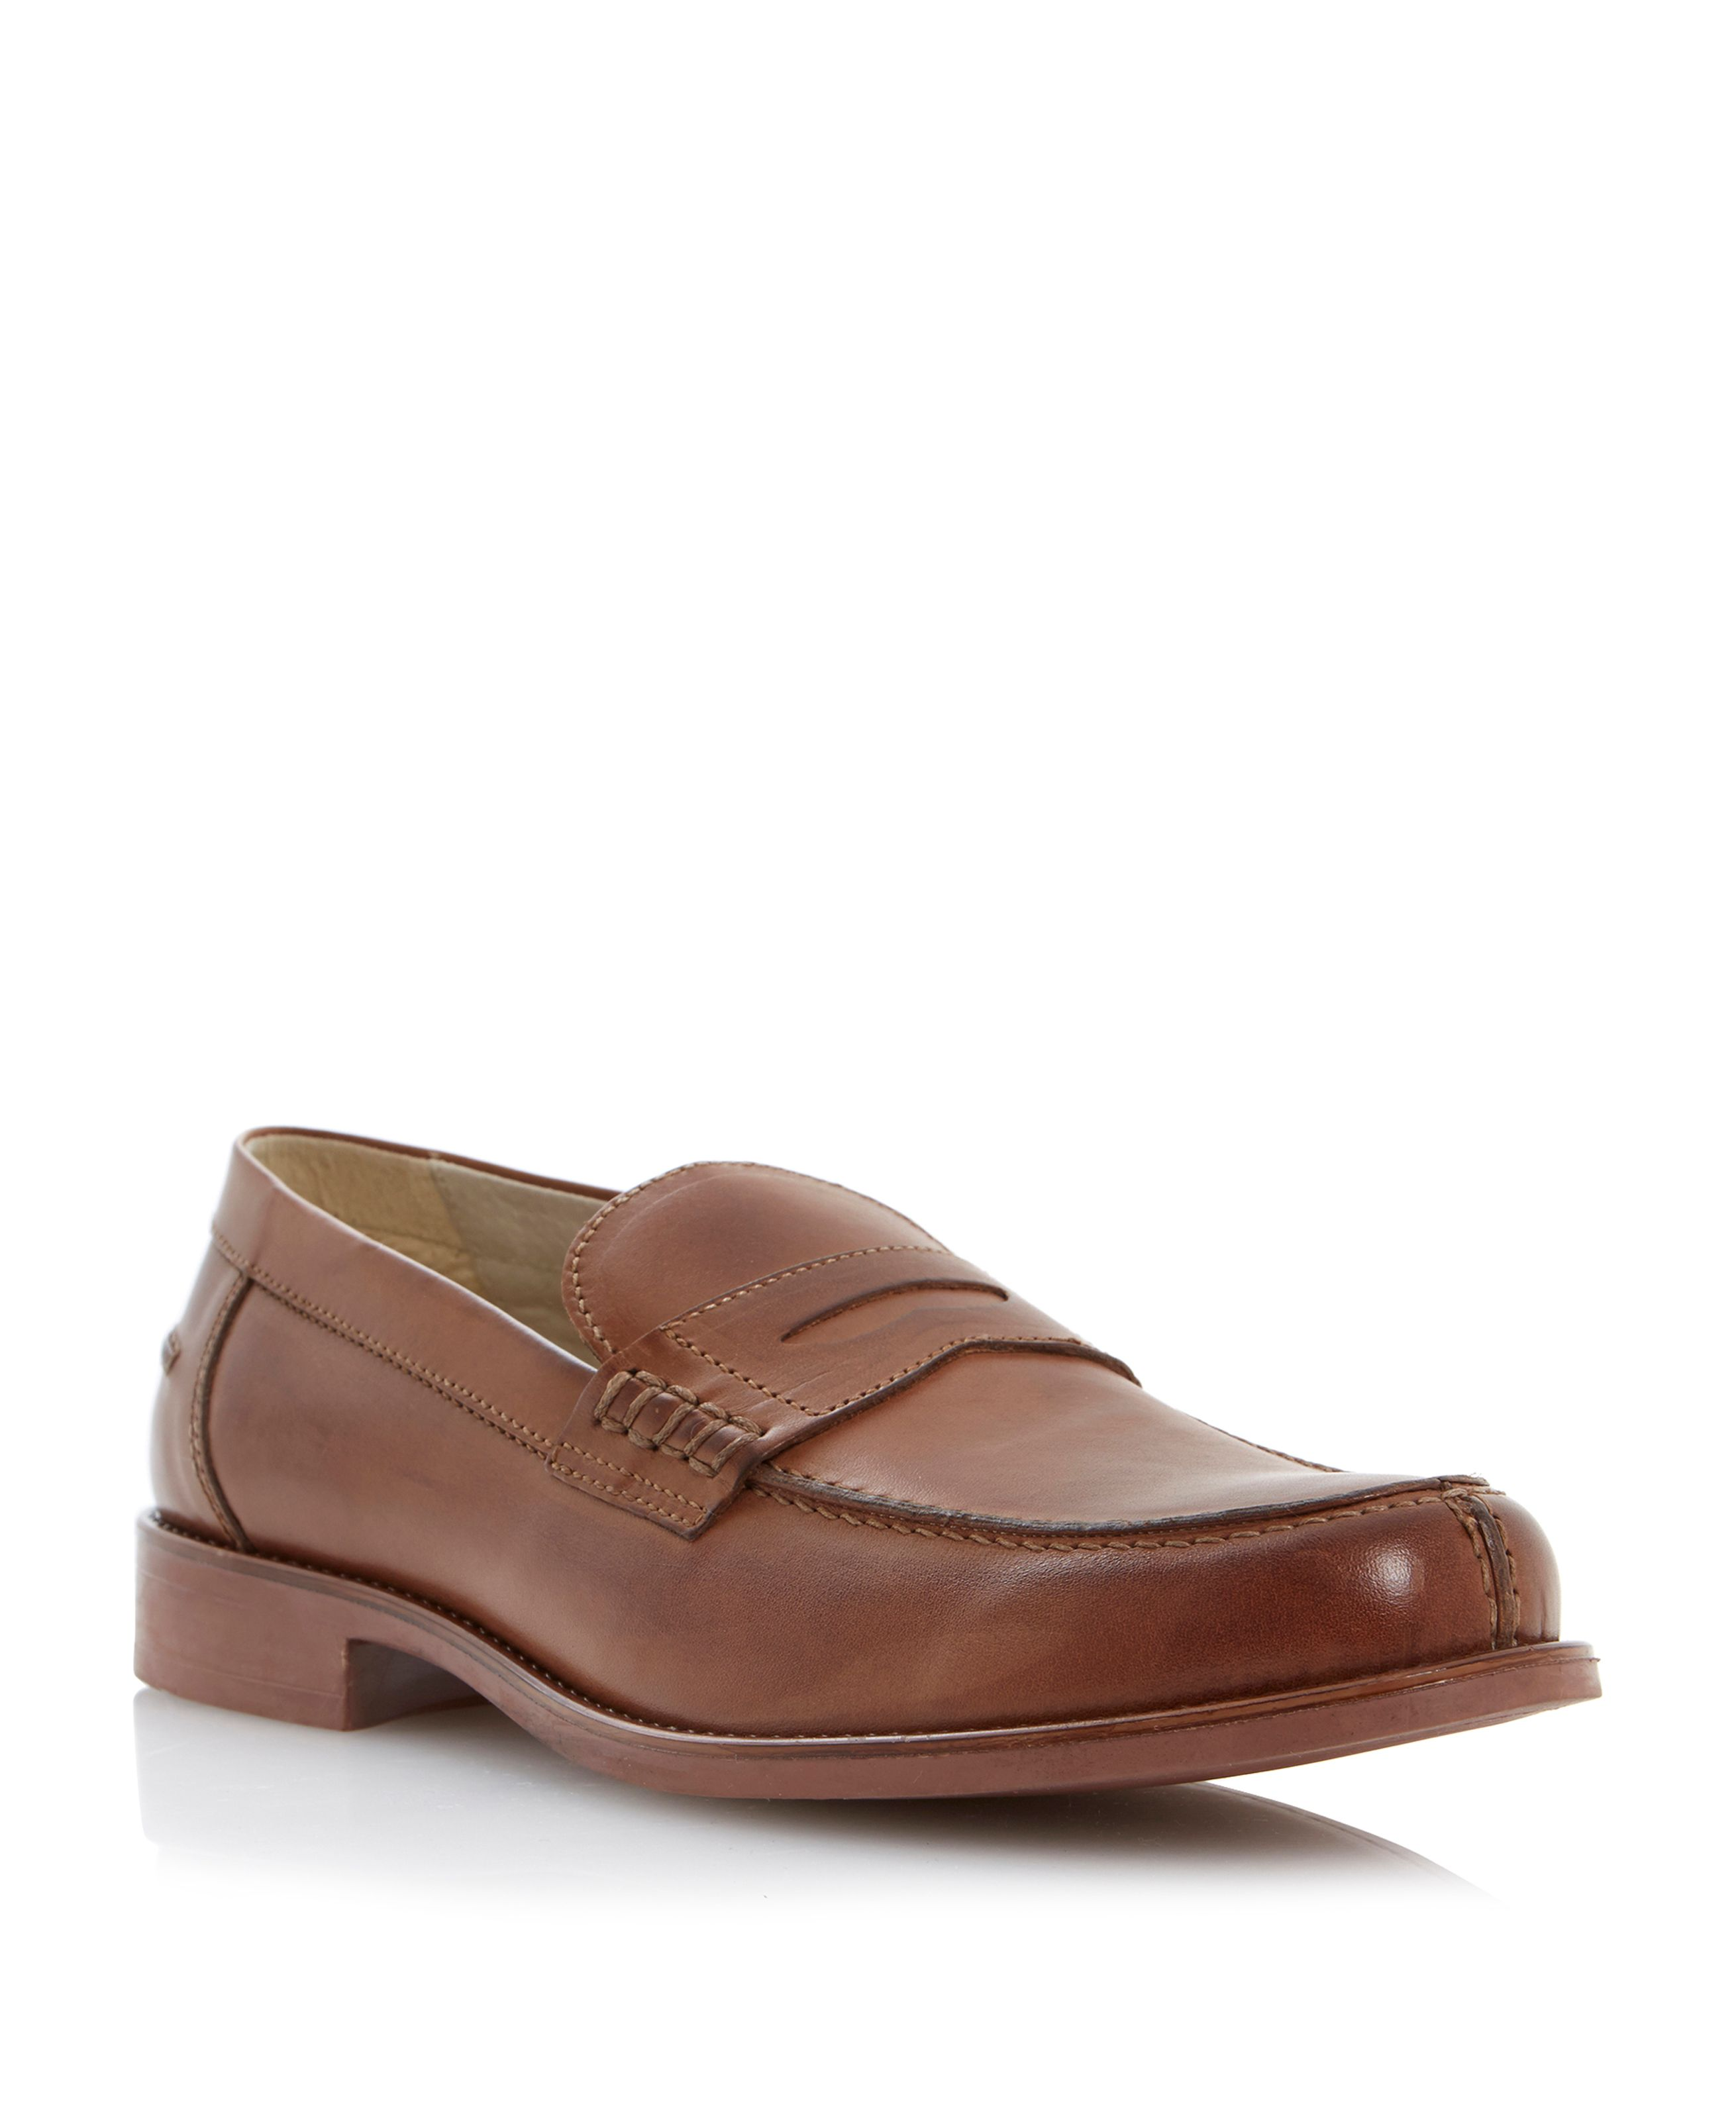 Brockley penny loafers